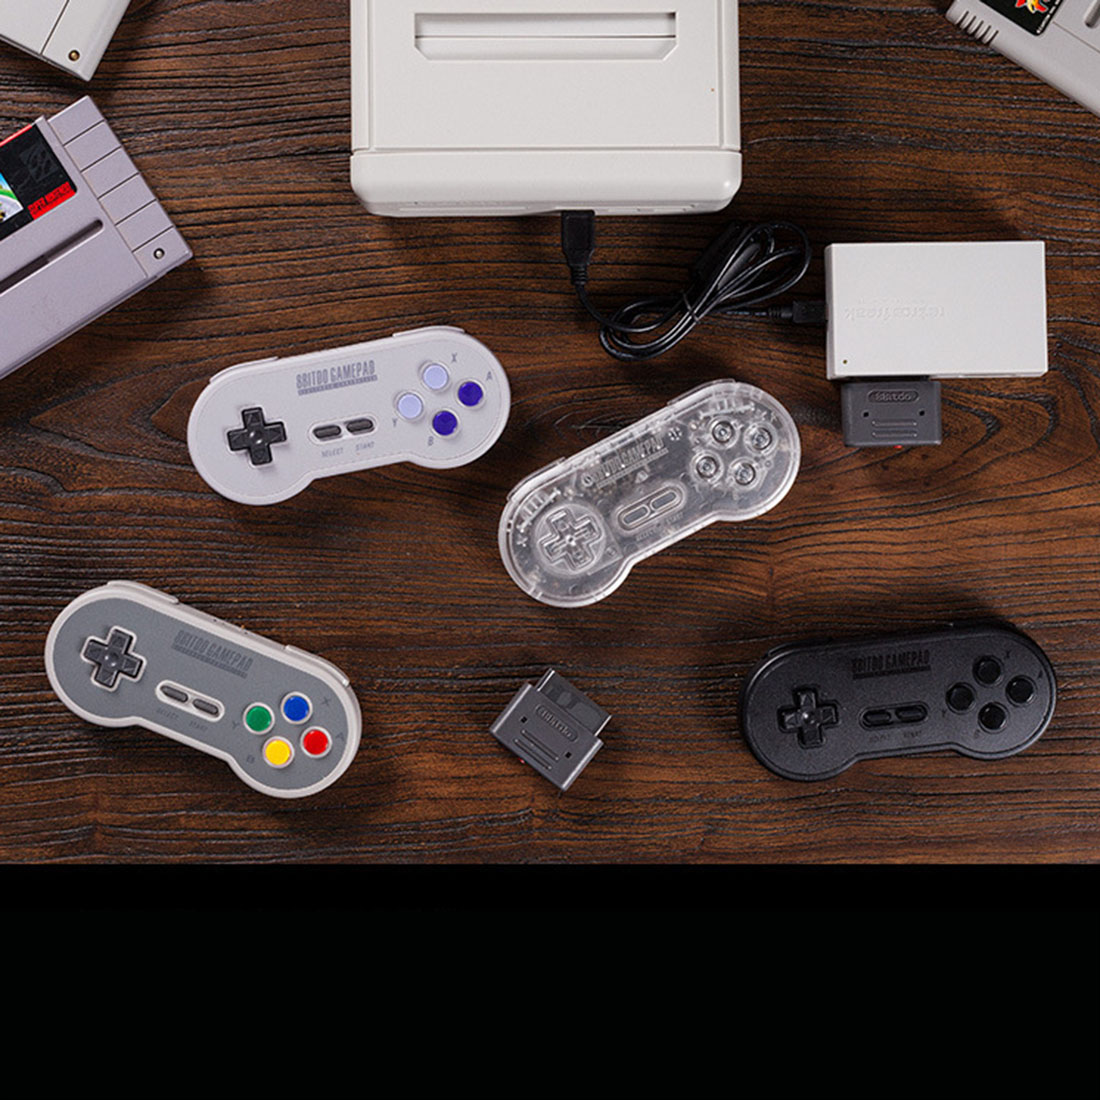 8Bitdo SN30 Classic Wireless Controller Bluetooth Gamepad with Receiver for Android/mac OS/steam